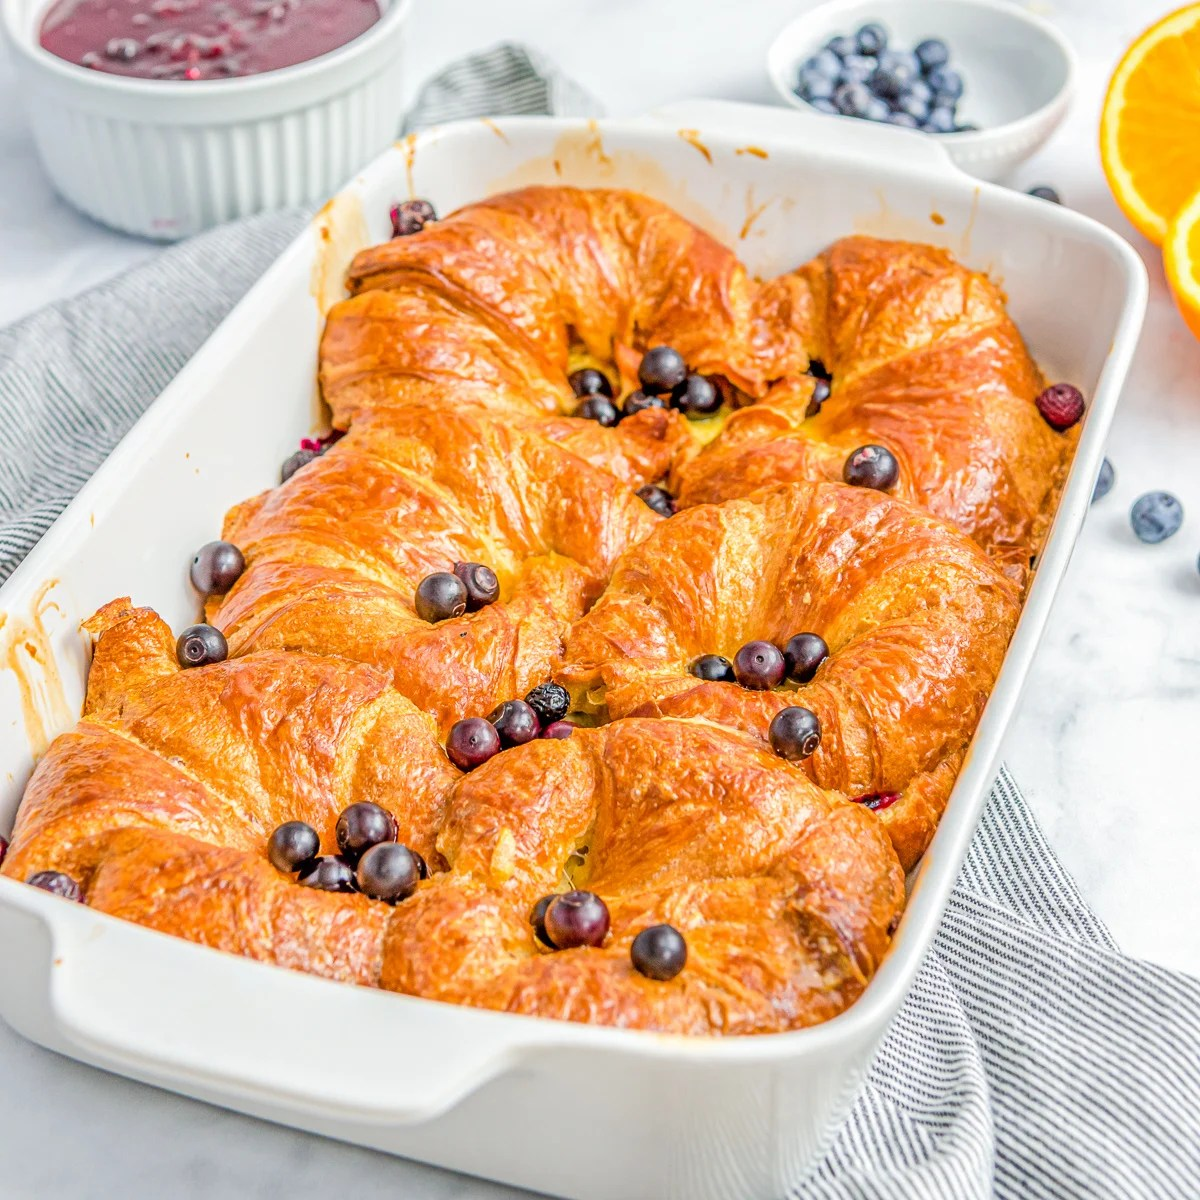 Square image of French Toast in baking dish.